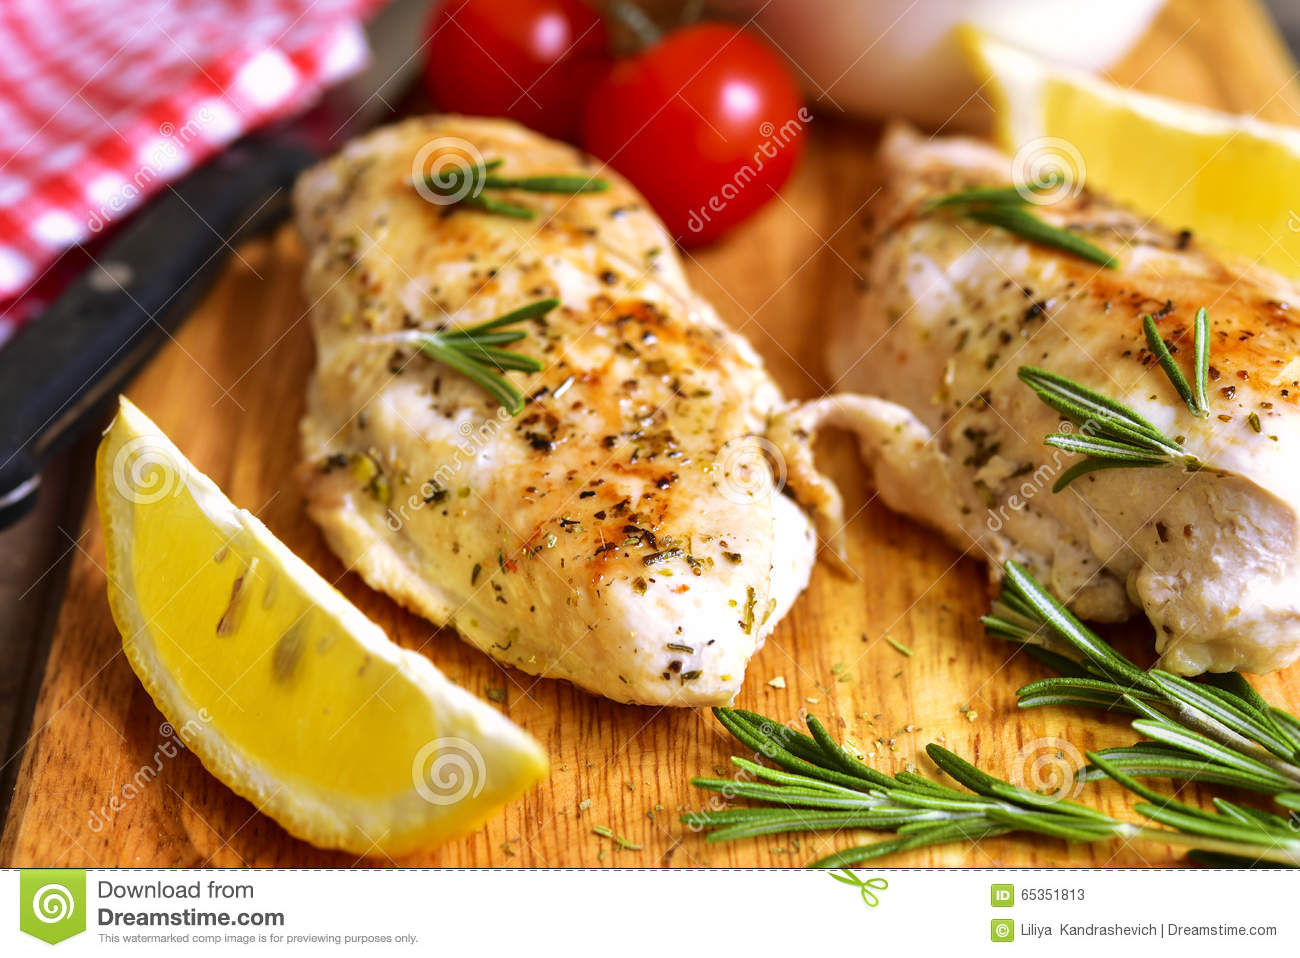 Chicken Breast Baked With Rosemary. Stock Photo - Image: 65351813